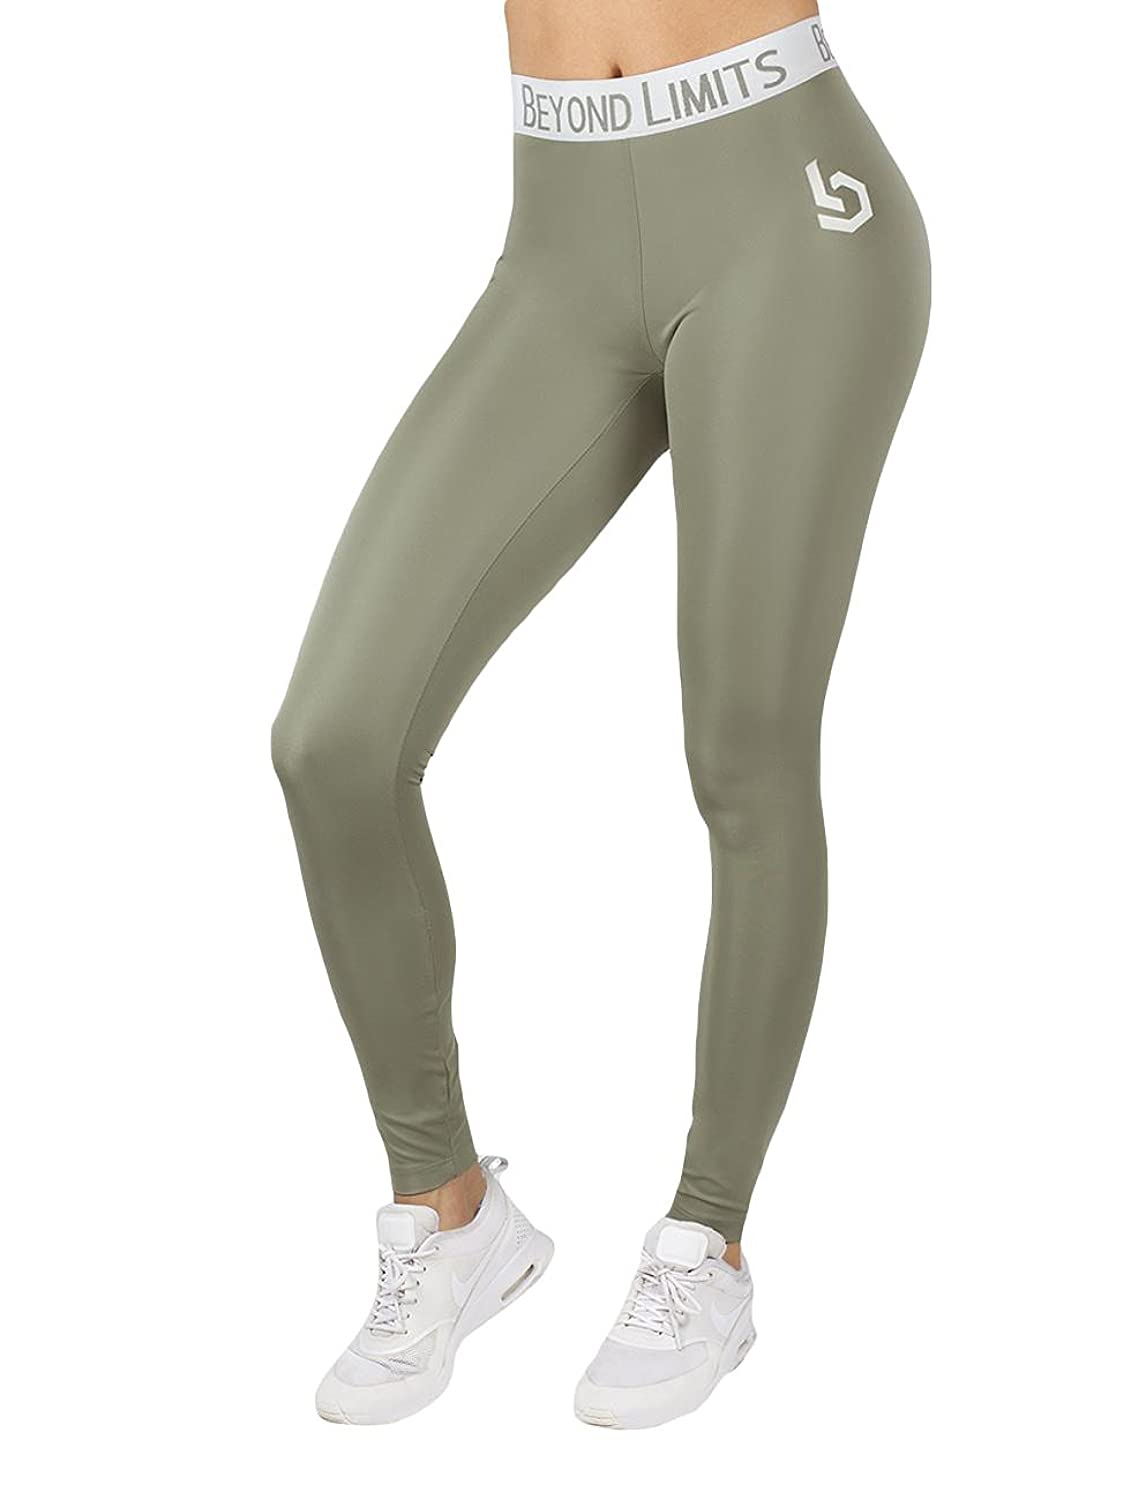 Beyond Limits Damen Legging Flex